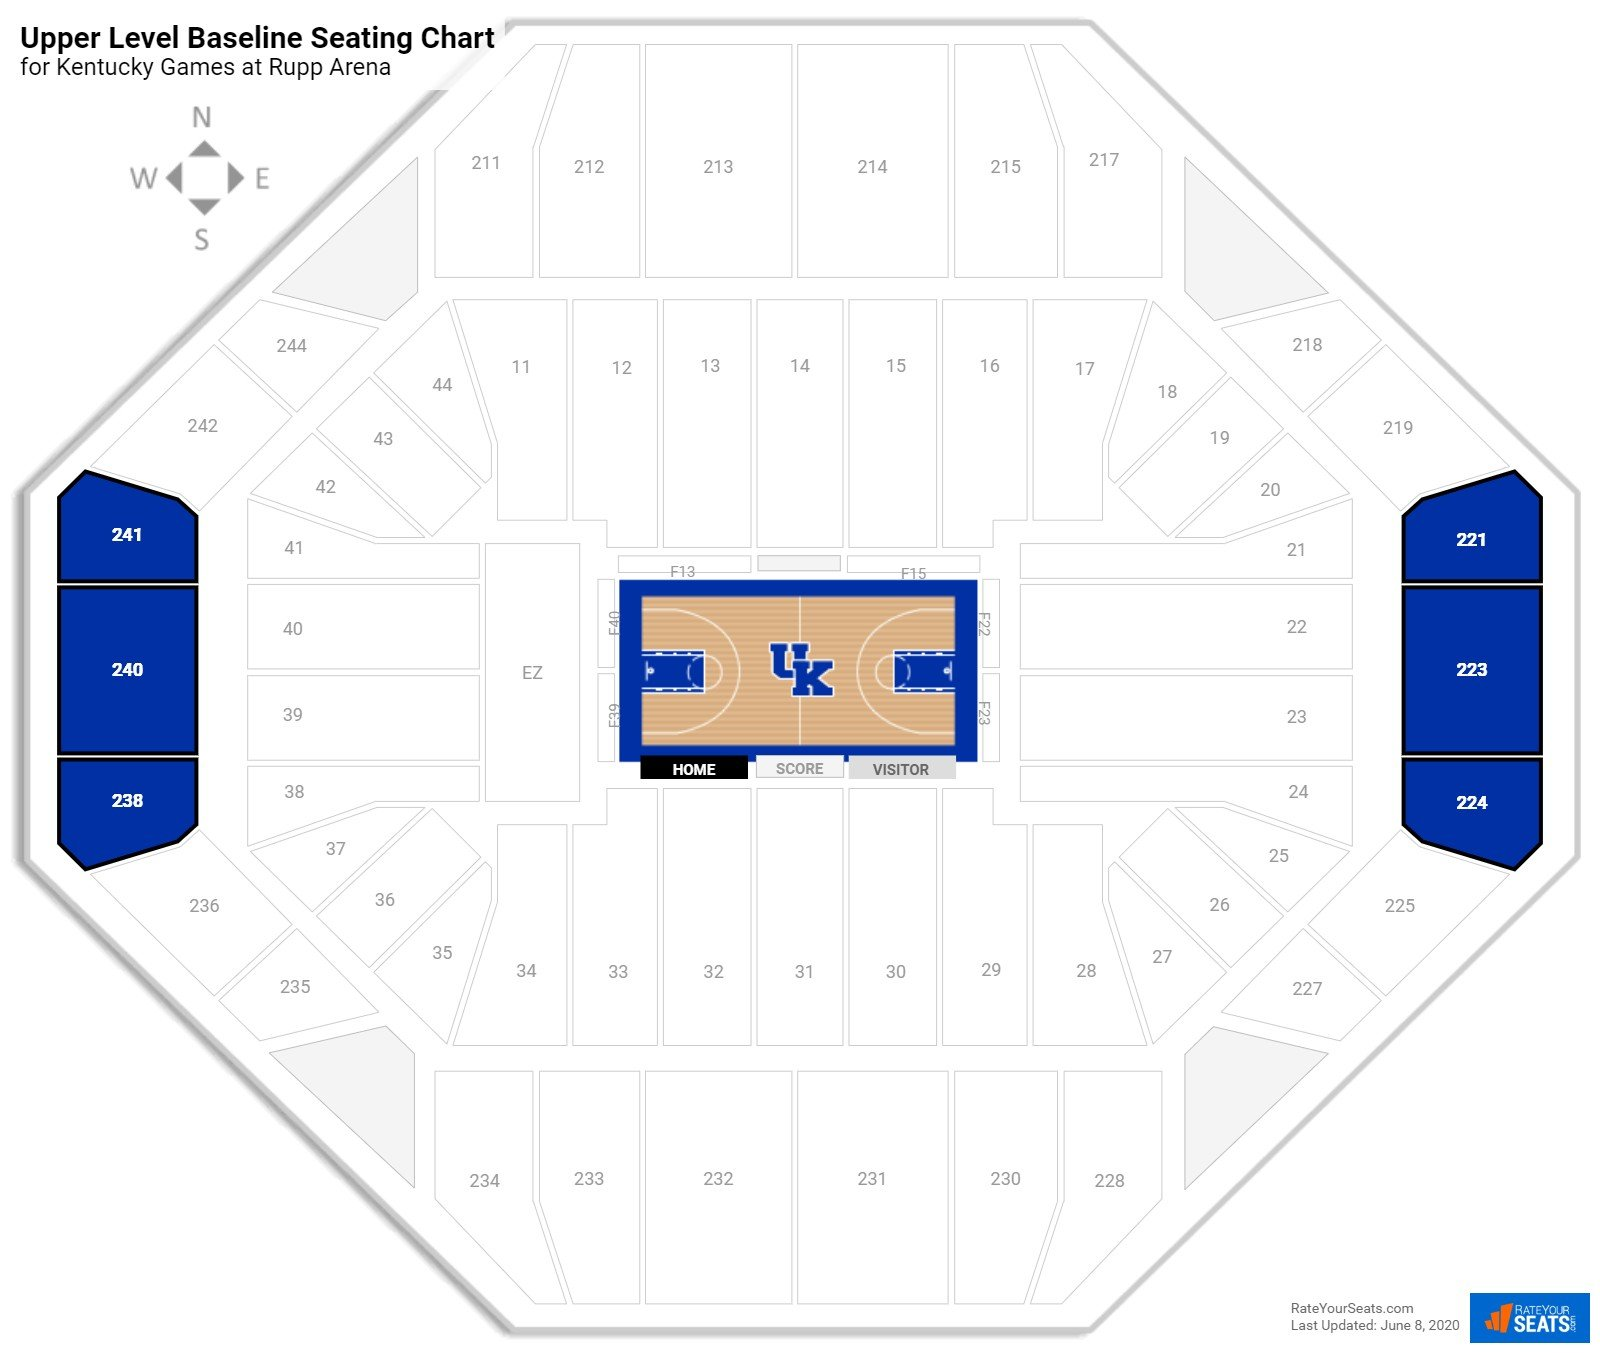 Rupp Arena Upper Level Baseline seating chart